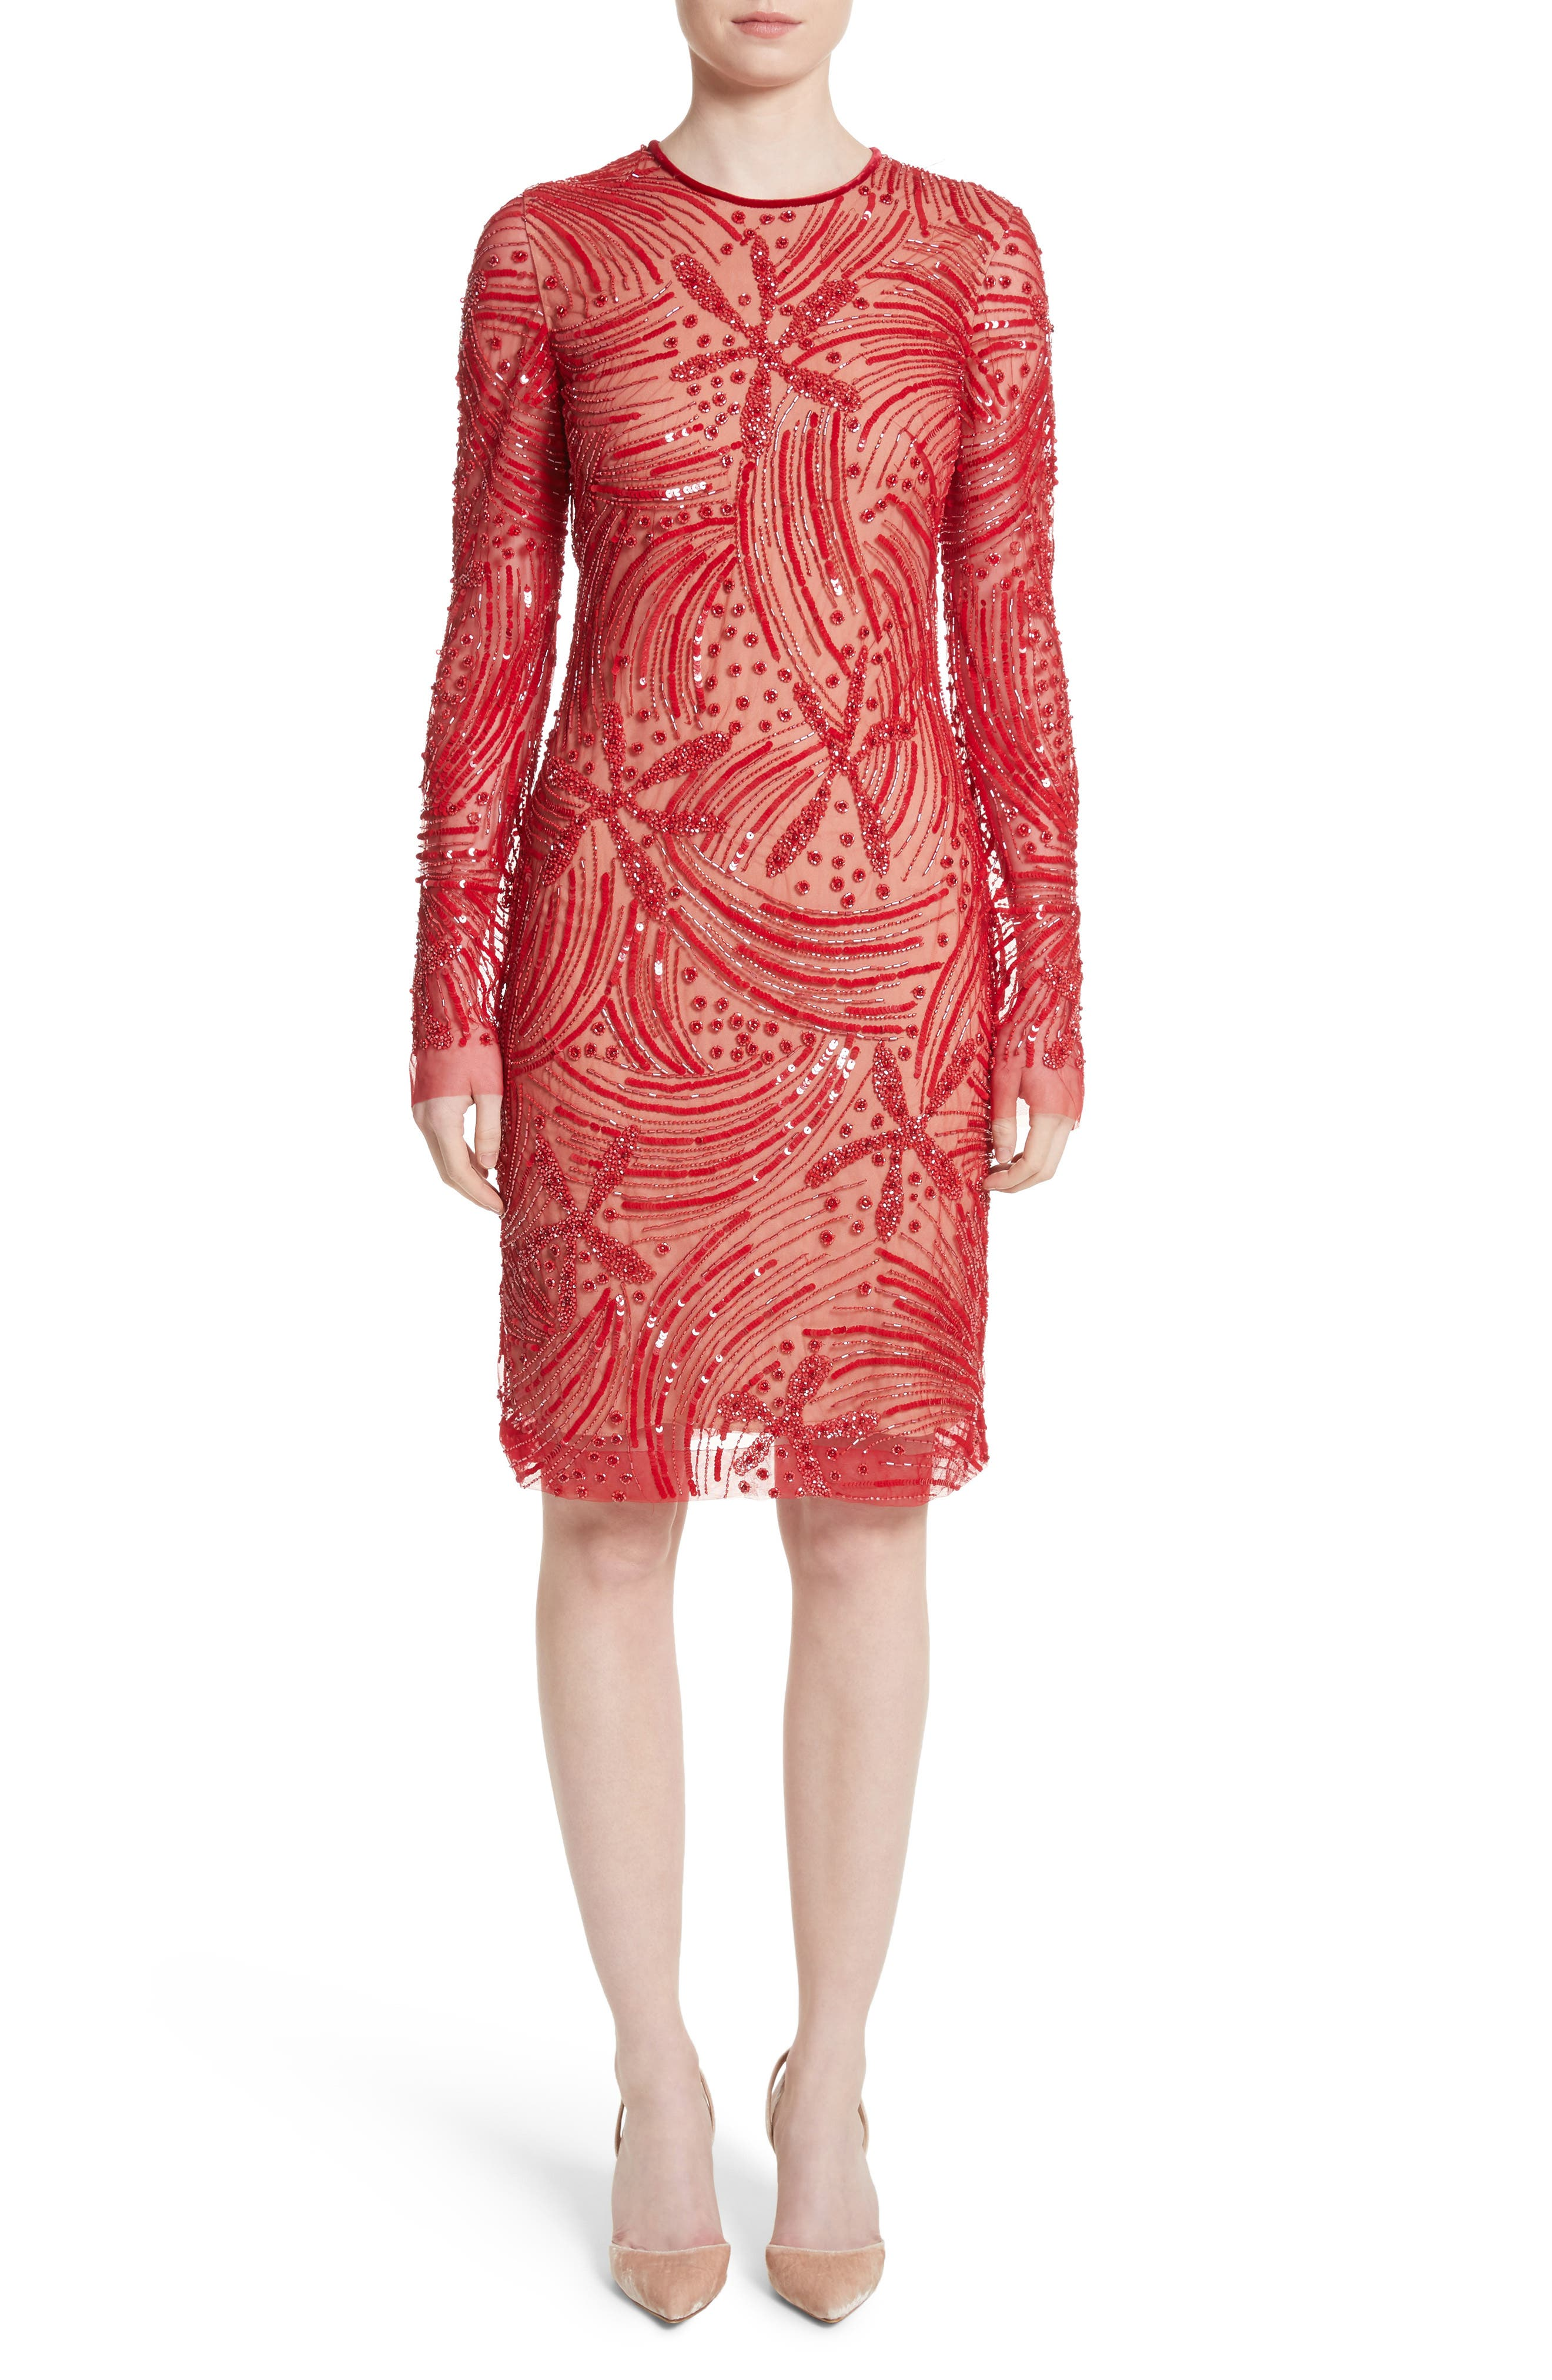 Naeem Khan Beaded Sheath Dress